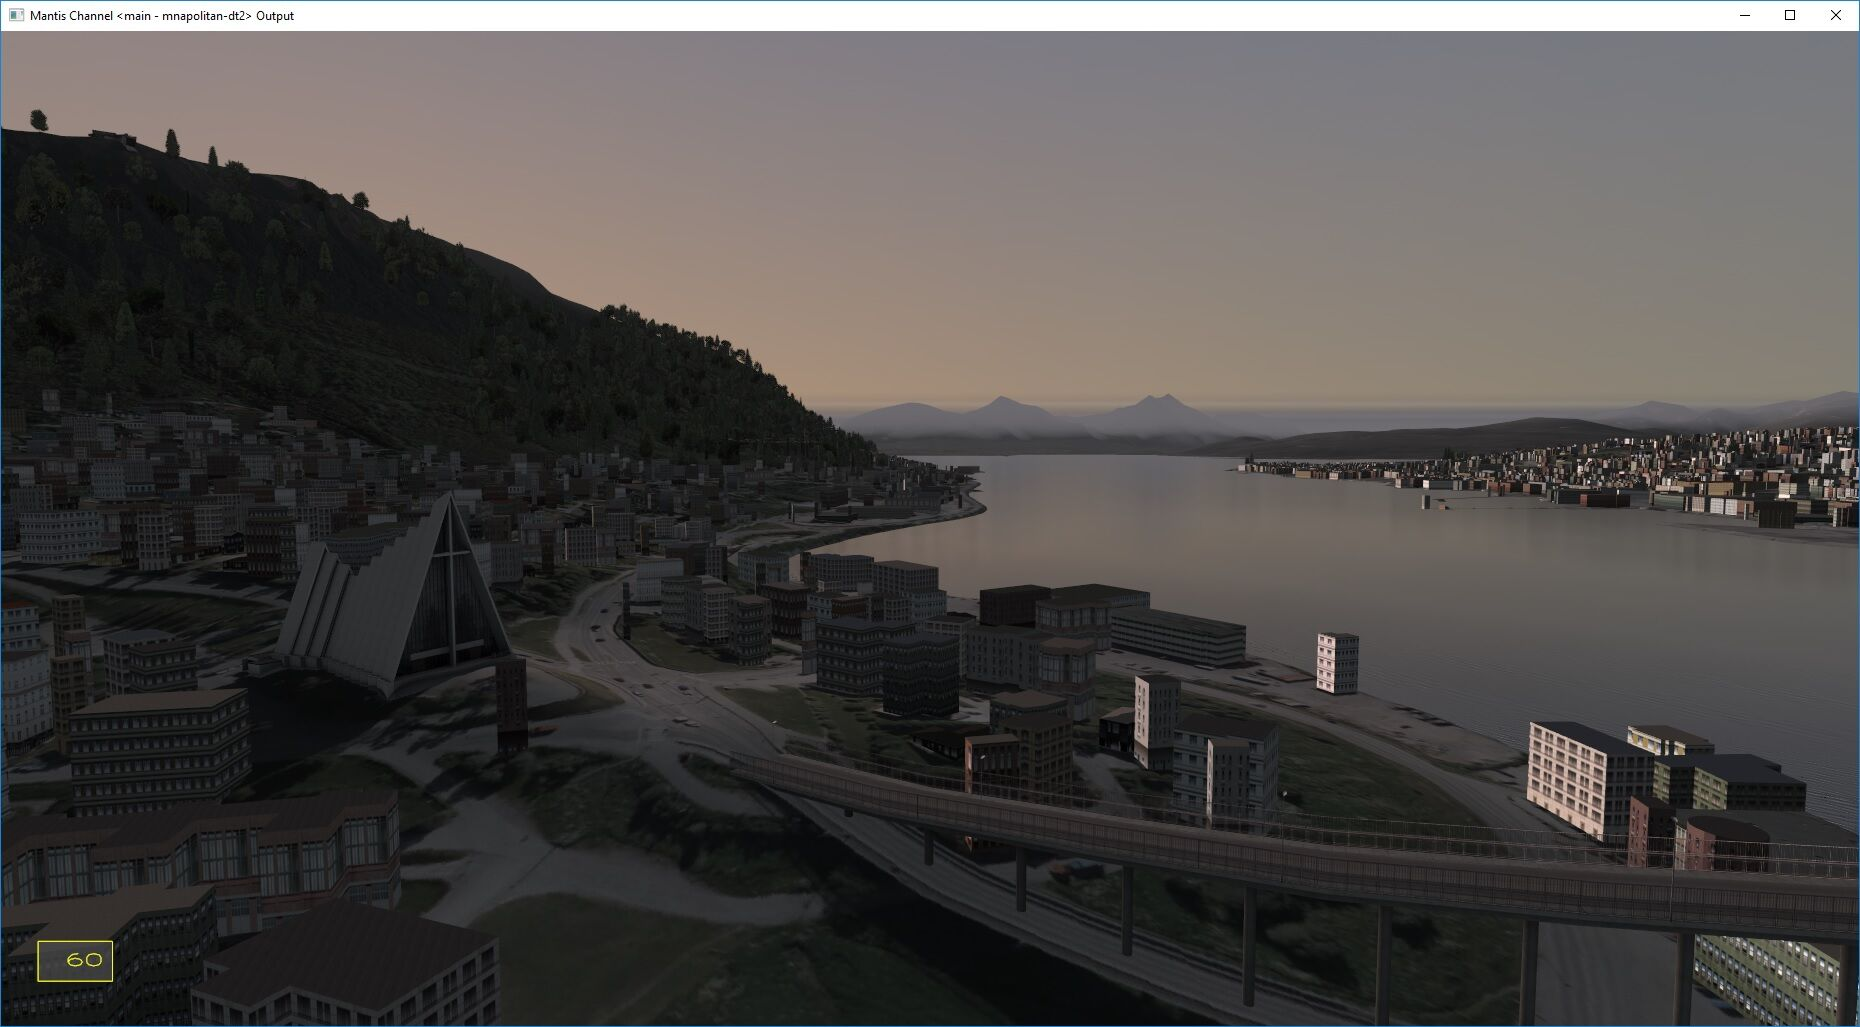 In this photo you can see a 3D terrain simulation of a rural town derived from many sources of geospatial data and processed through Quantum3D's workflow